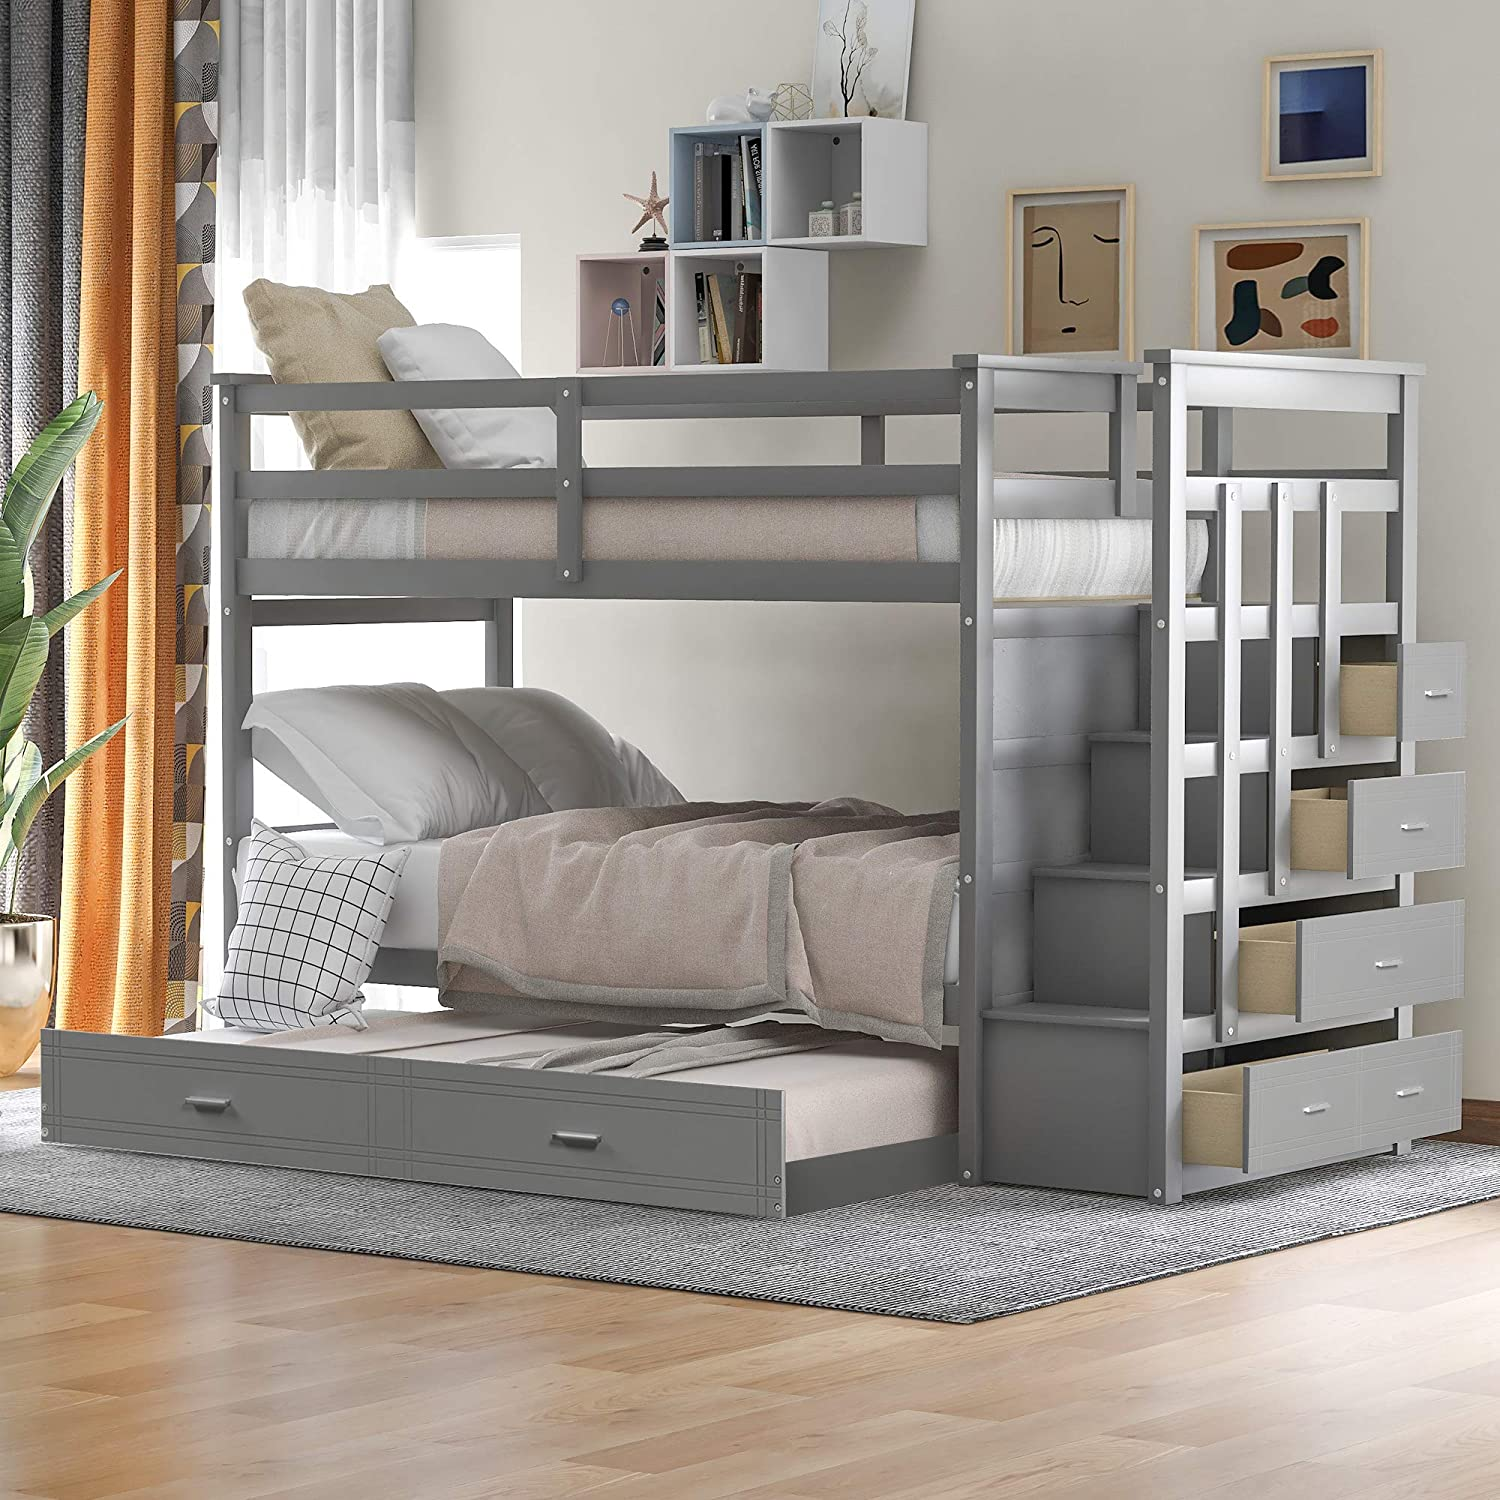 Bunk It is very popular Bed Twin Over Wood Frame Detroit Mall with Stairway